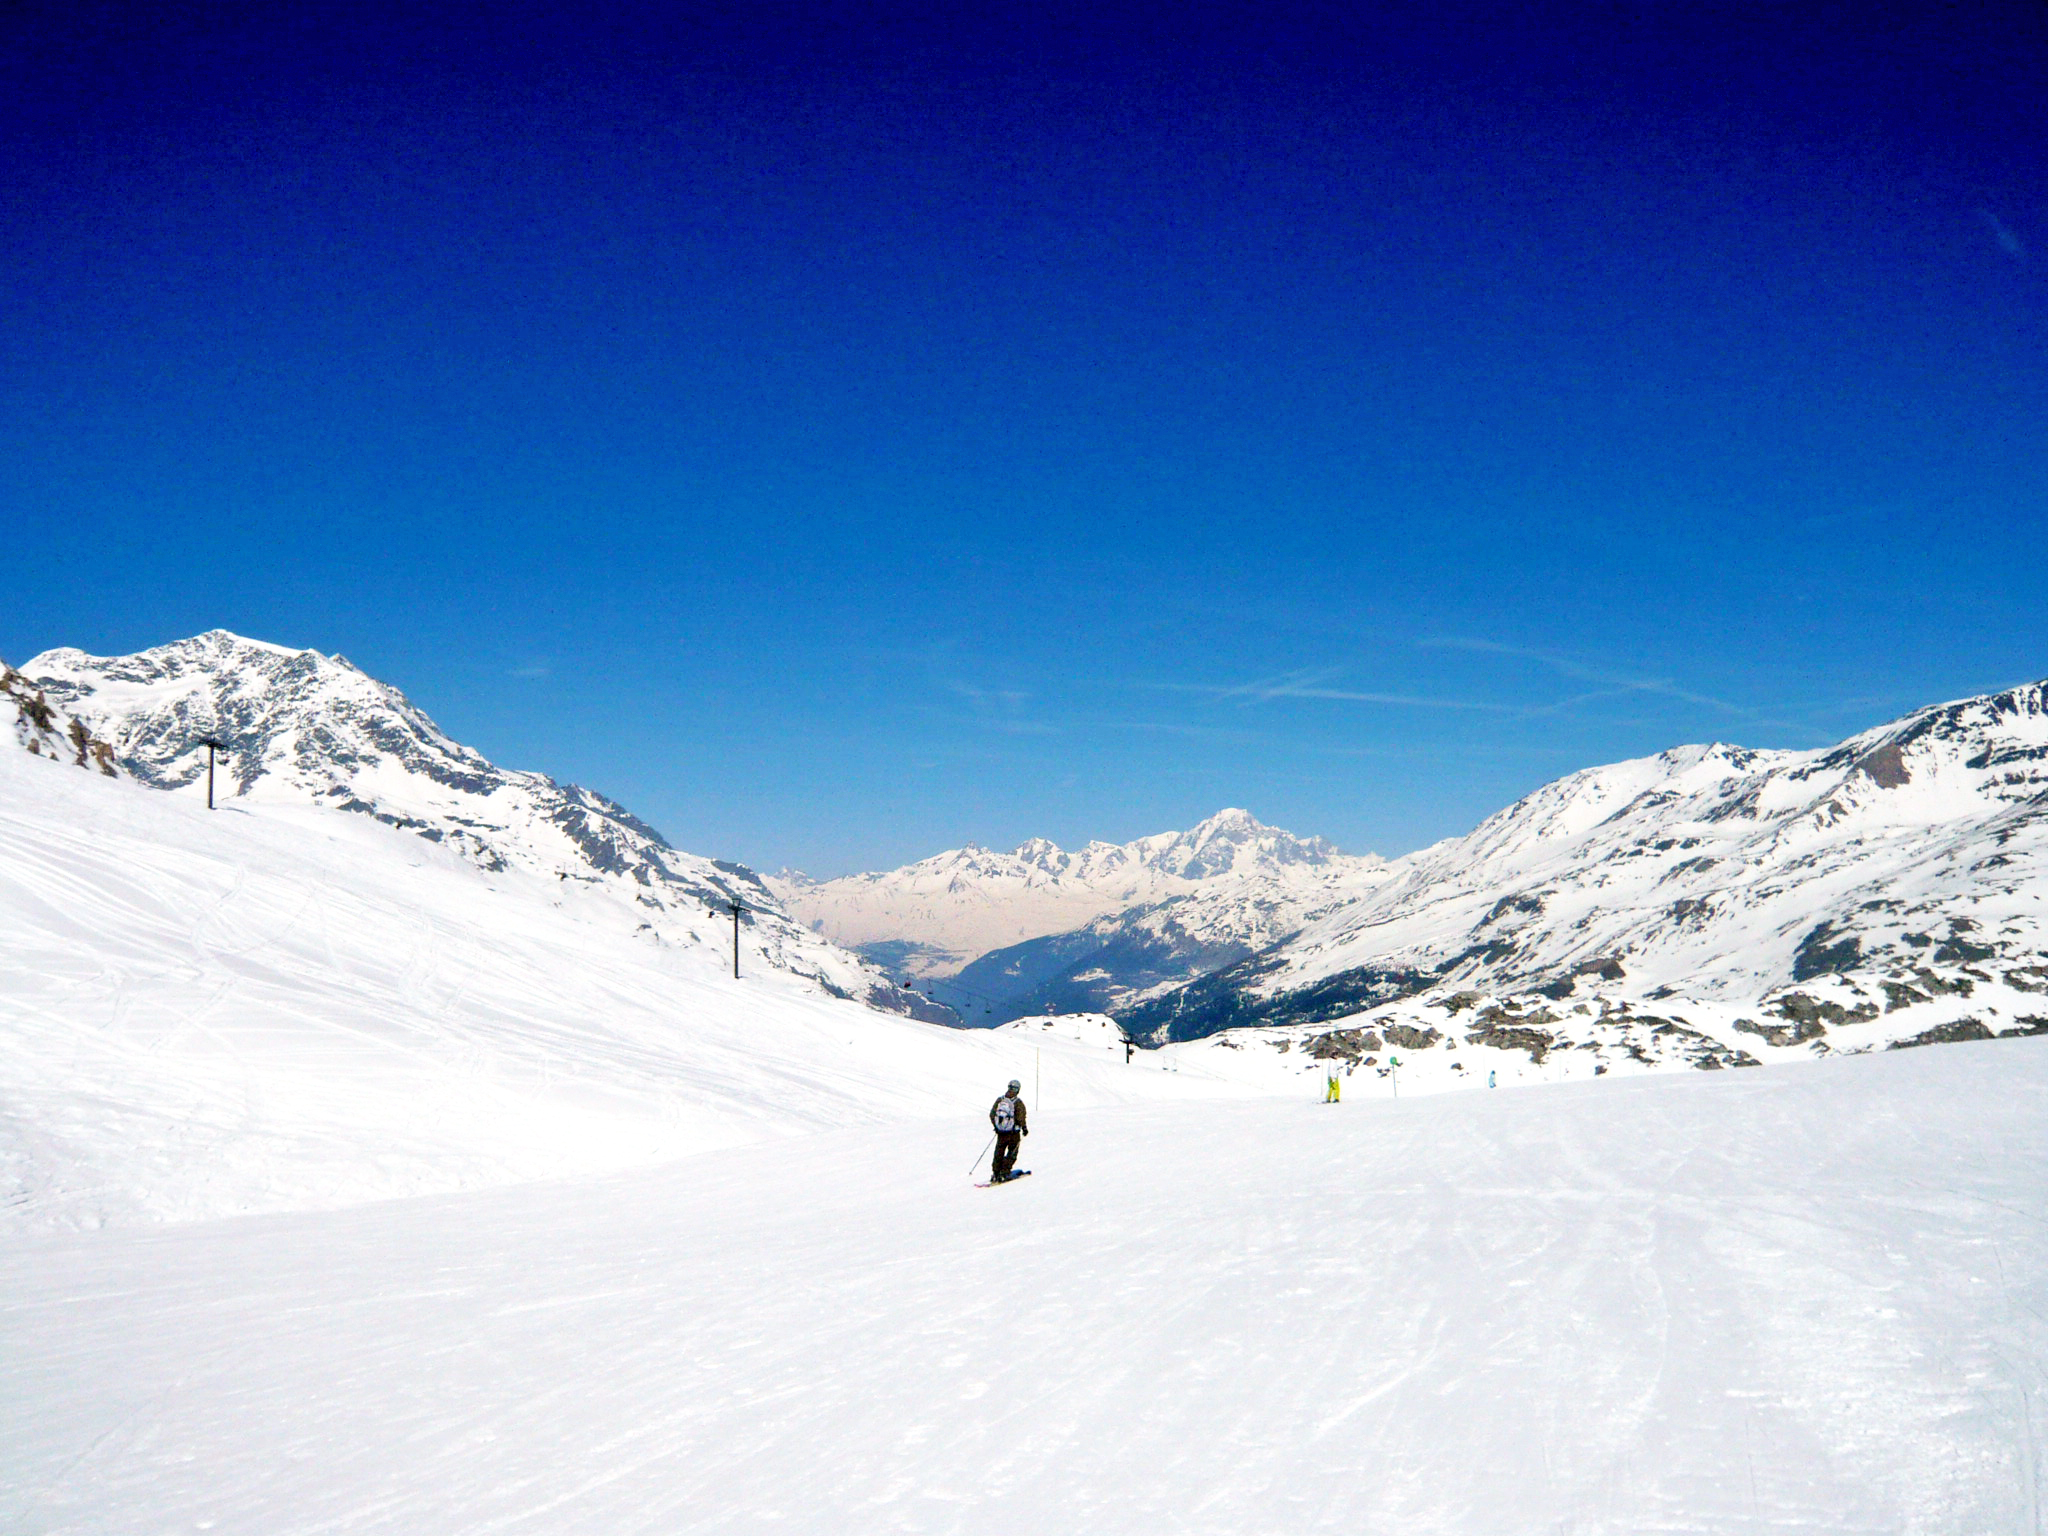 Tignes Ski Slopes